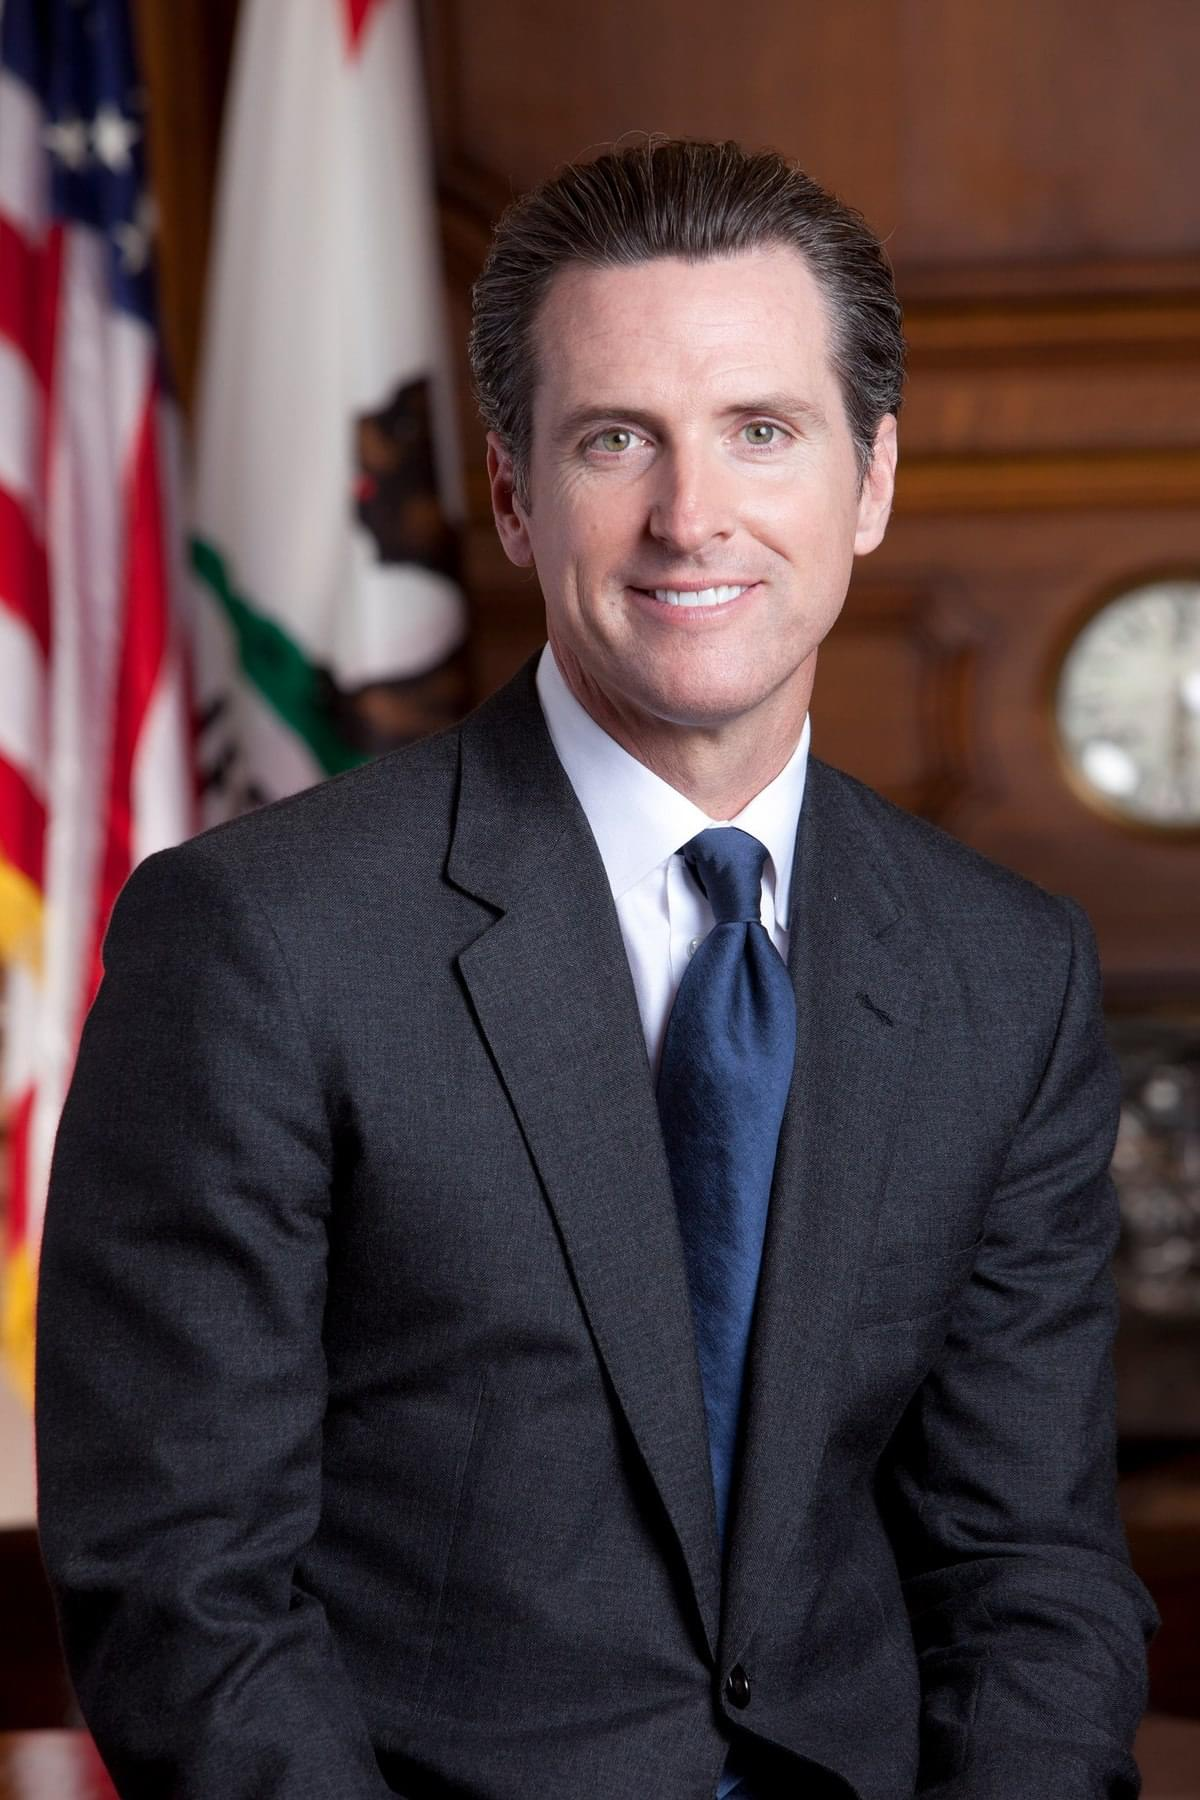 NEWSOM MOVES TO INCREASE AID TO PARADISE